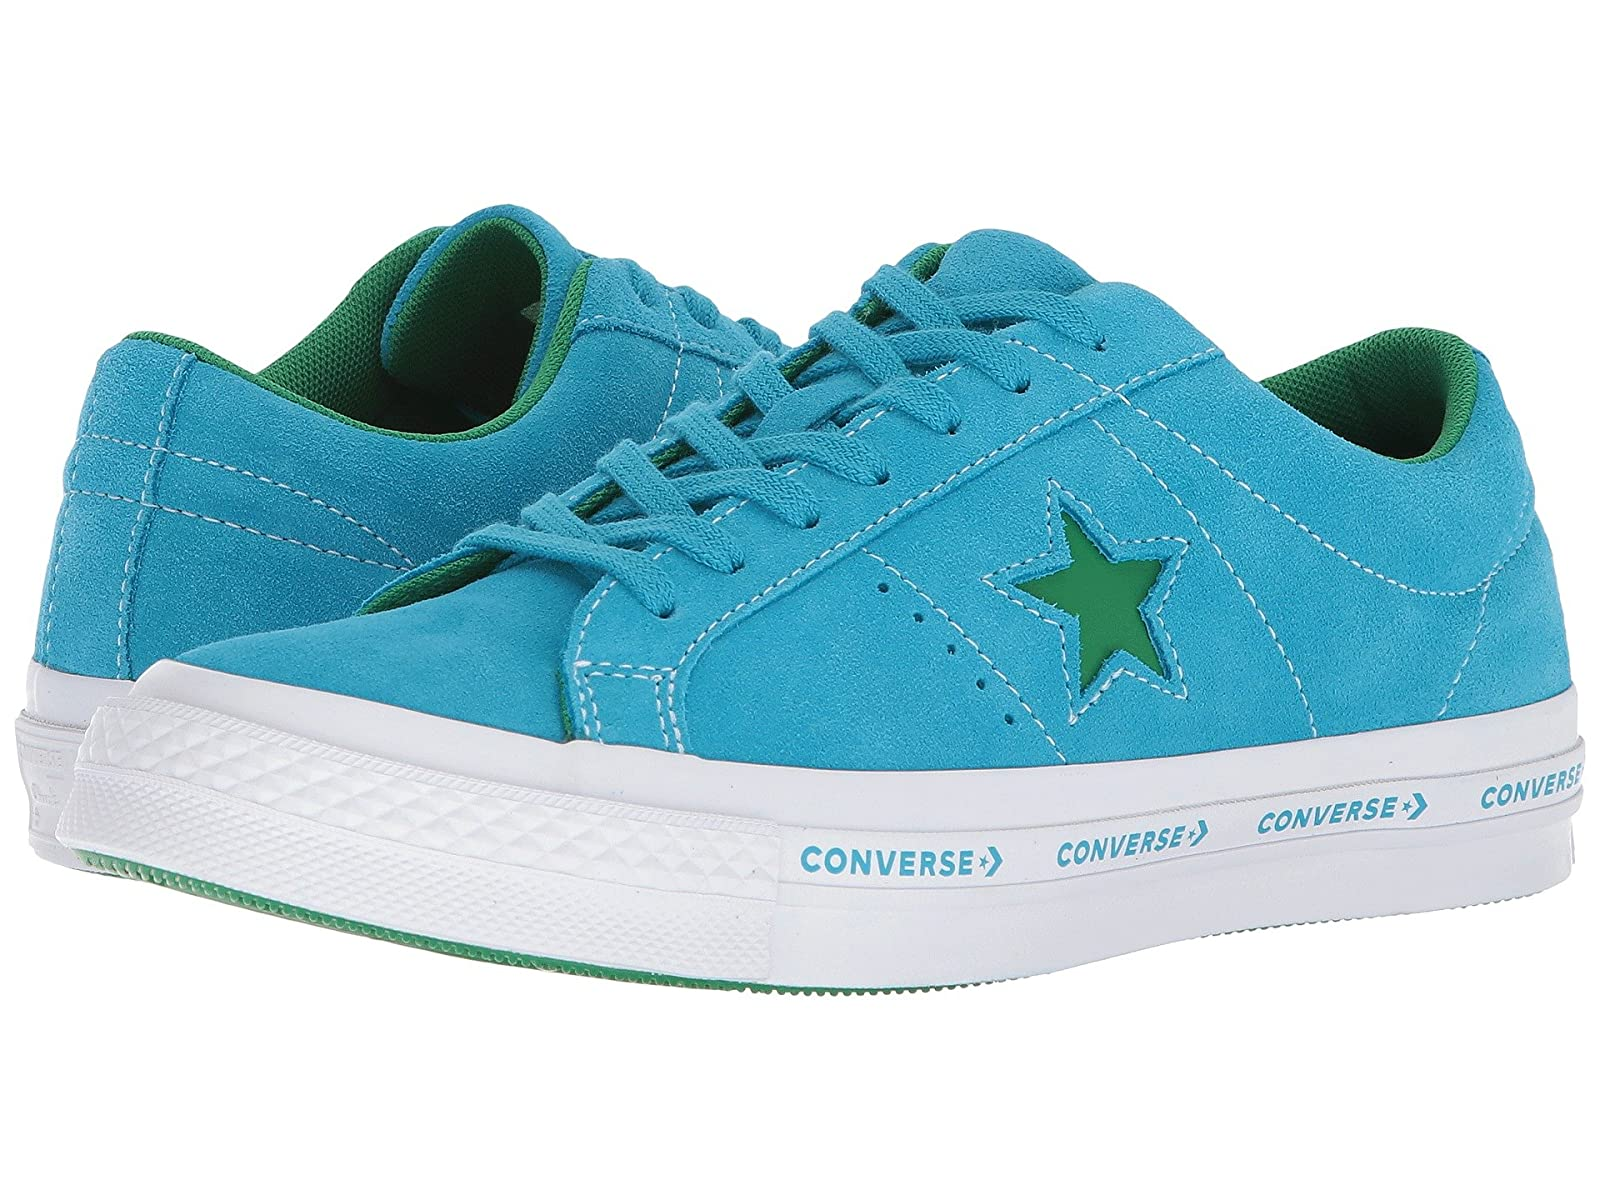 Converse One Star® Pinstripe OxCheap and distinctive eye-catching shoes